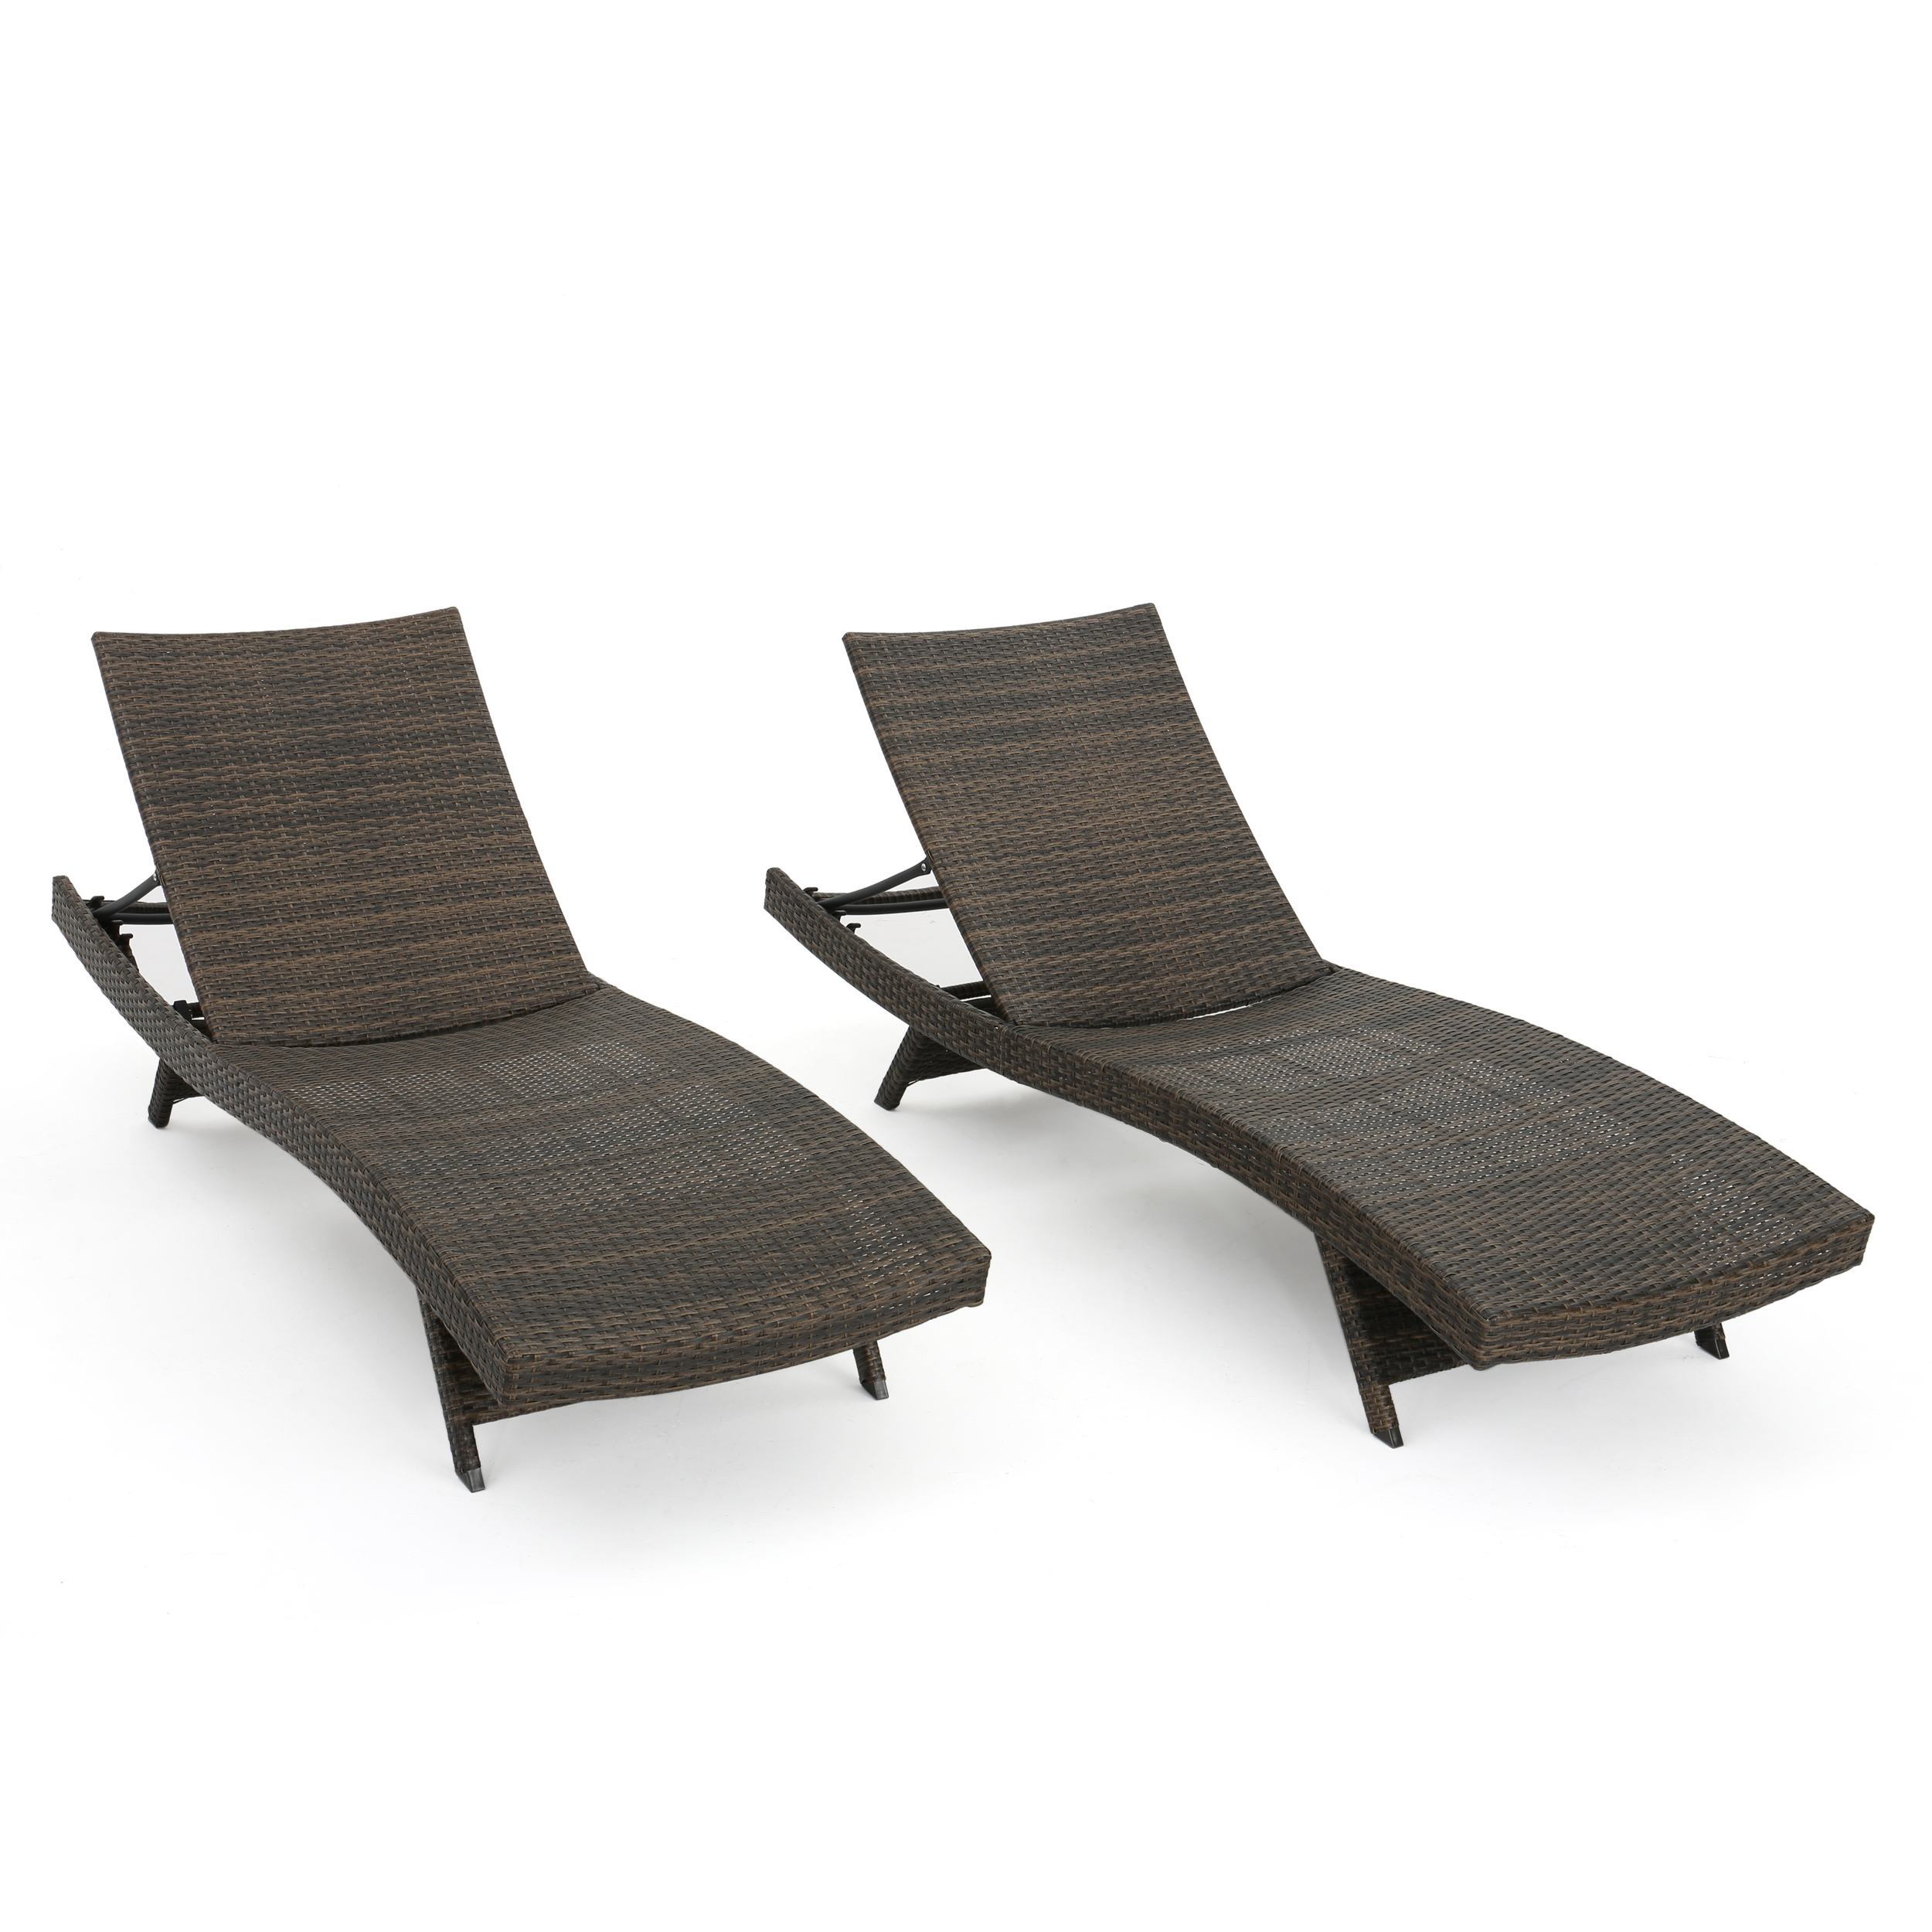 Preferred Outdoor Aluminum Chaise Lounges Intended For Thelma Outdoor Aluminum Wicker Chaise Lounge, Set Of 2, Mixed Mocha (View 22 of 25)